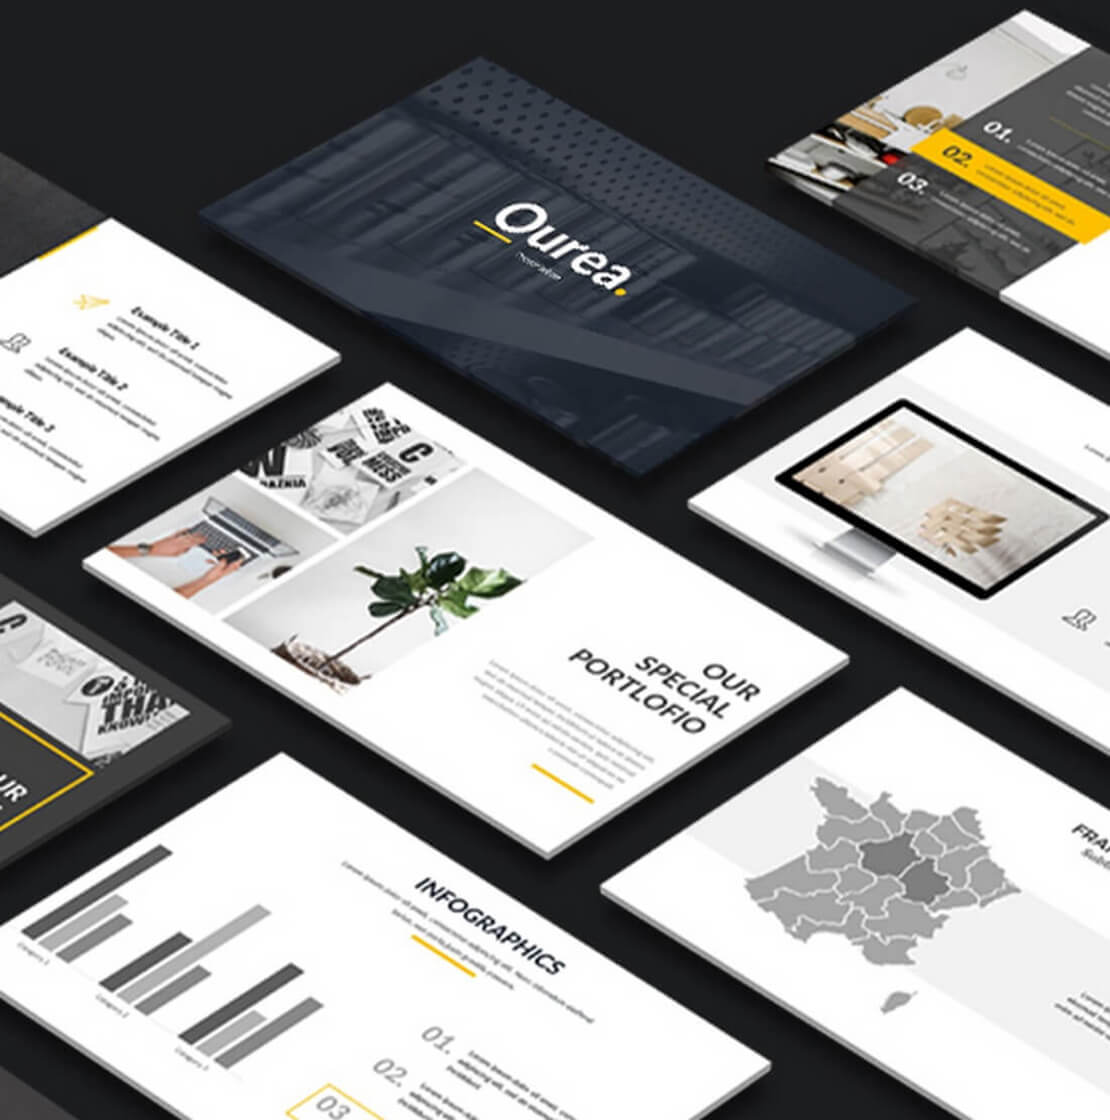 qurea Keynote Template For Presentation